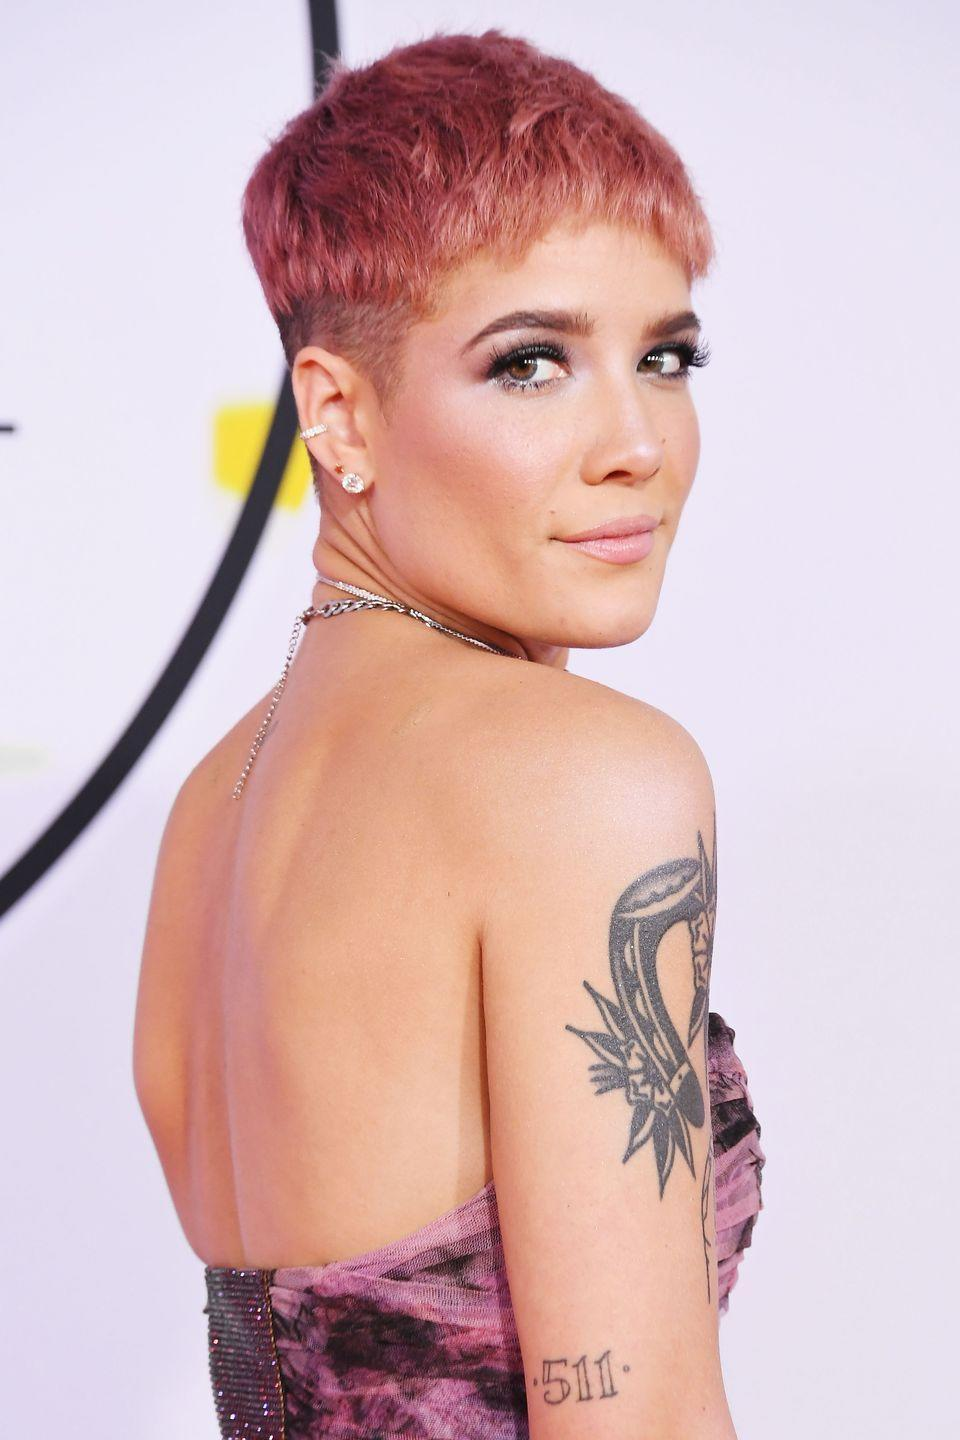 "<p><strong>Born</strong>: Ashley Frangipane</p><p>Although fans have long speculated that Halsey created her stage name as an anagram of her first name, Ashley, she was actually inspired by a street in Brooklyn. In an <a href=""https://www.youtube.com/watch?v=cUG8VDYy7CY"" rel=""nofollow noopener"" target=""_blank"" data-ylk=""slk:interview for Vevo"" class=""link rapid-noclick-resp"">interview for Vevo</a>, the singer revealed that a friend of hers lived on Halsey Street, and she spent her weekends away from her New Jersey hometown there making music.</p>"